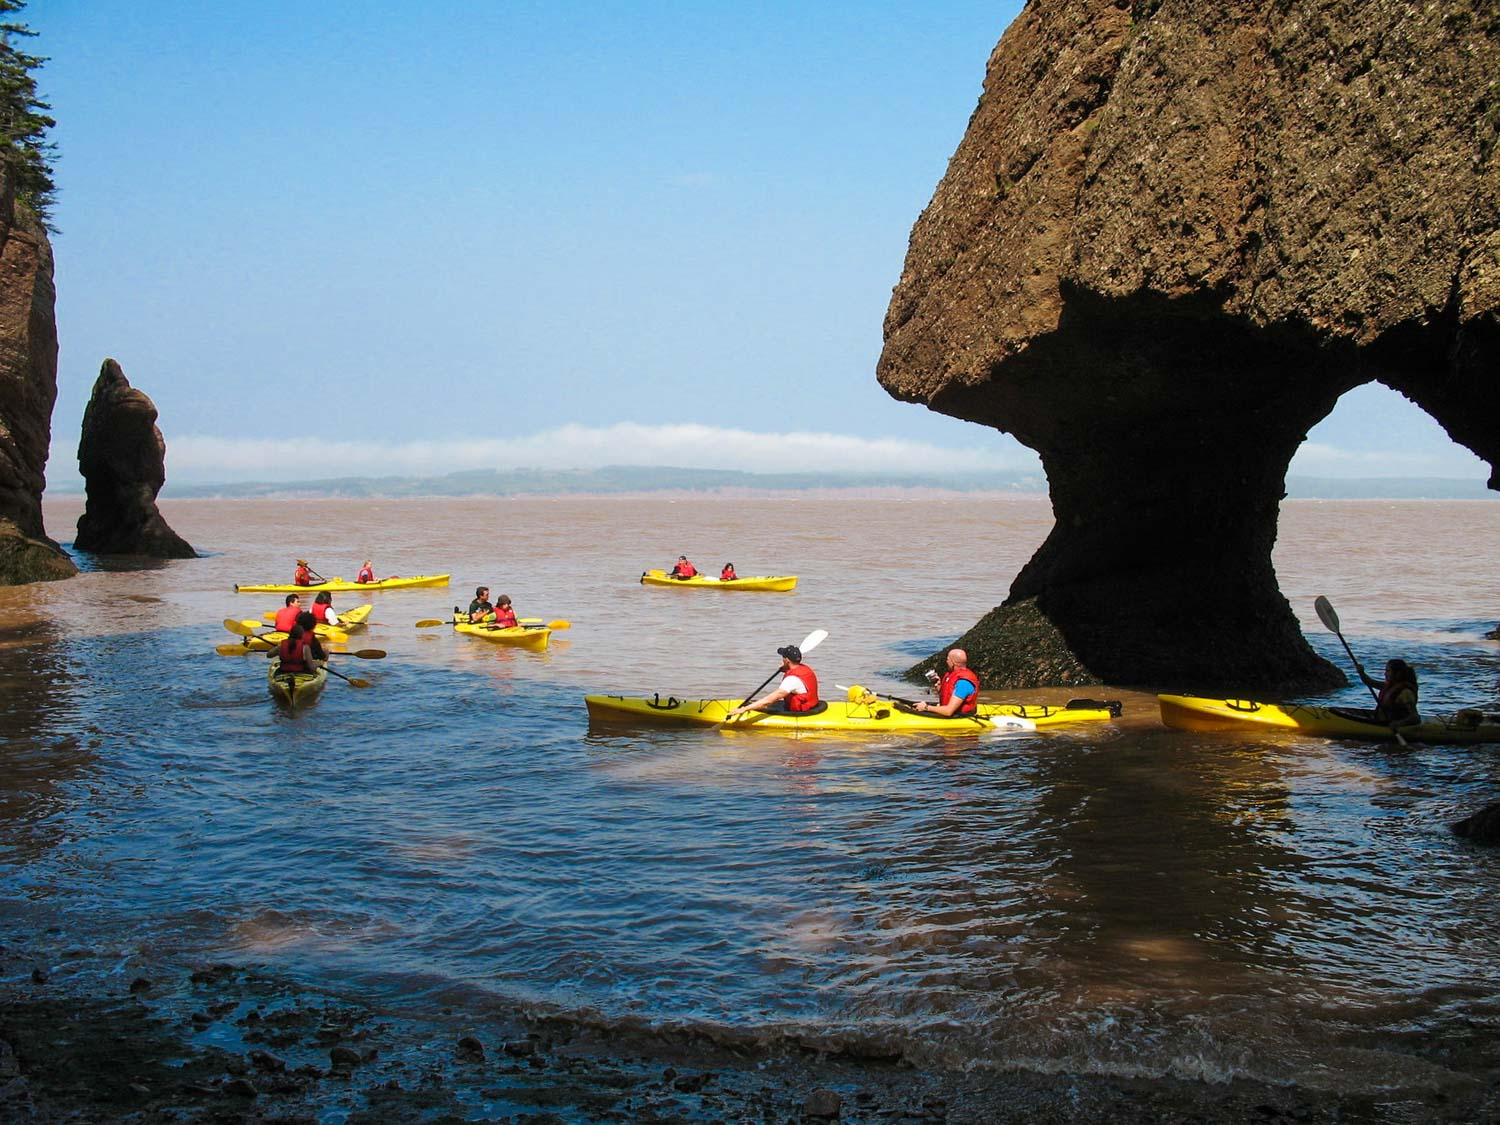 Sea kayaking Bay of Fundy Nova Scotia